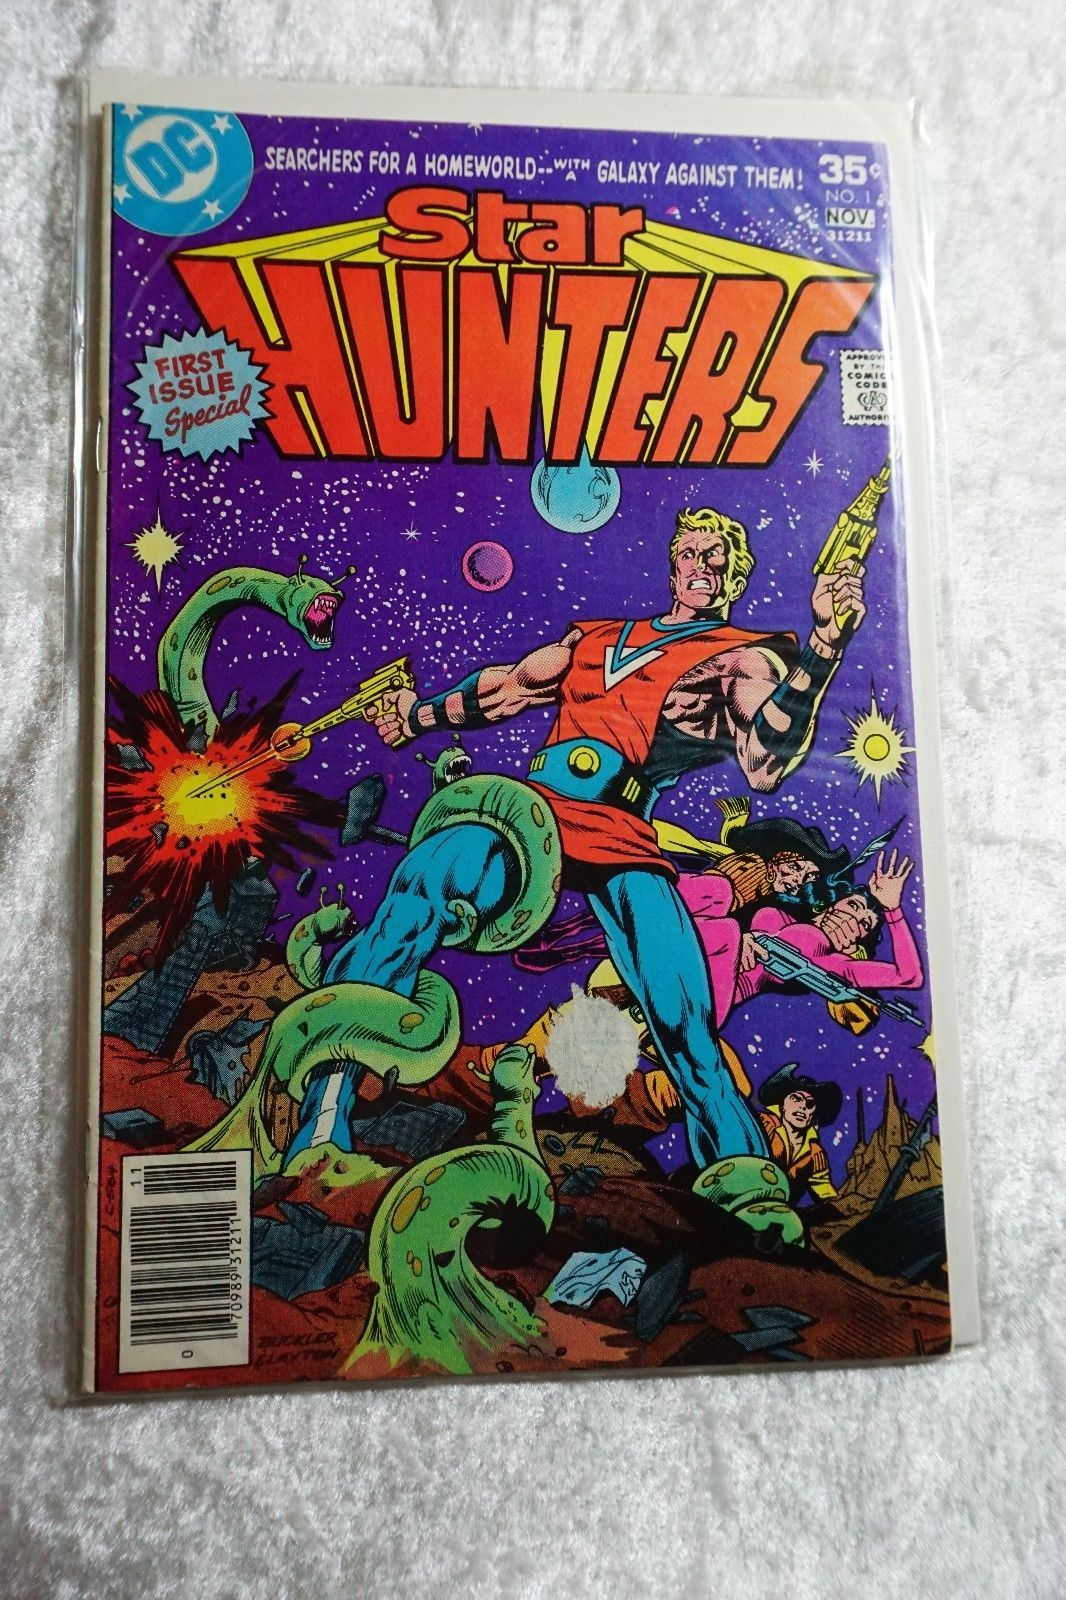 Star Hunters #1, Vintage DC Comics, Bronze DC, Vintage Graphics, Comic Book